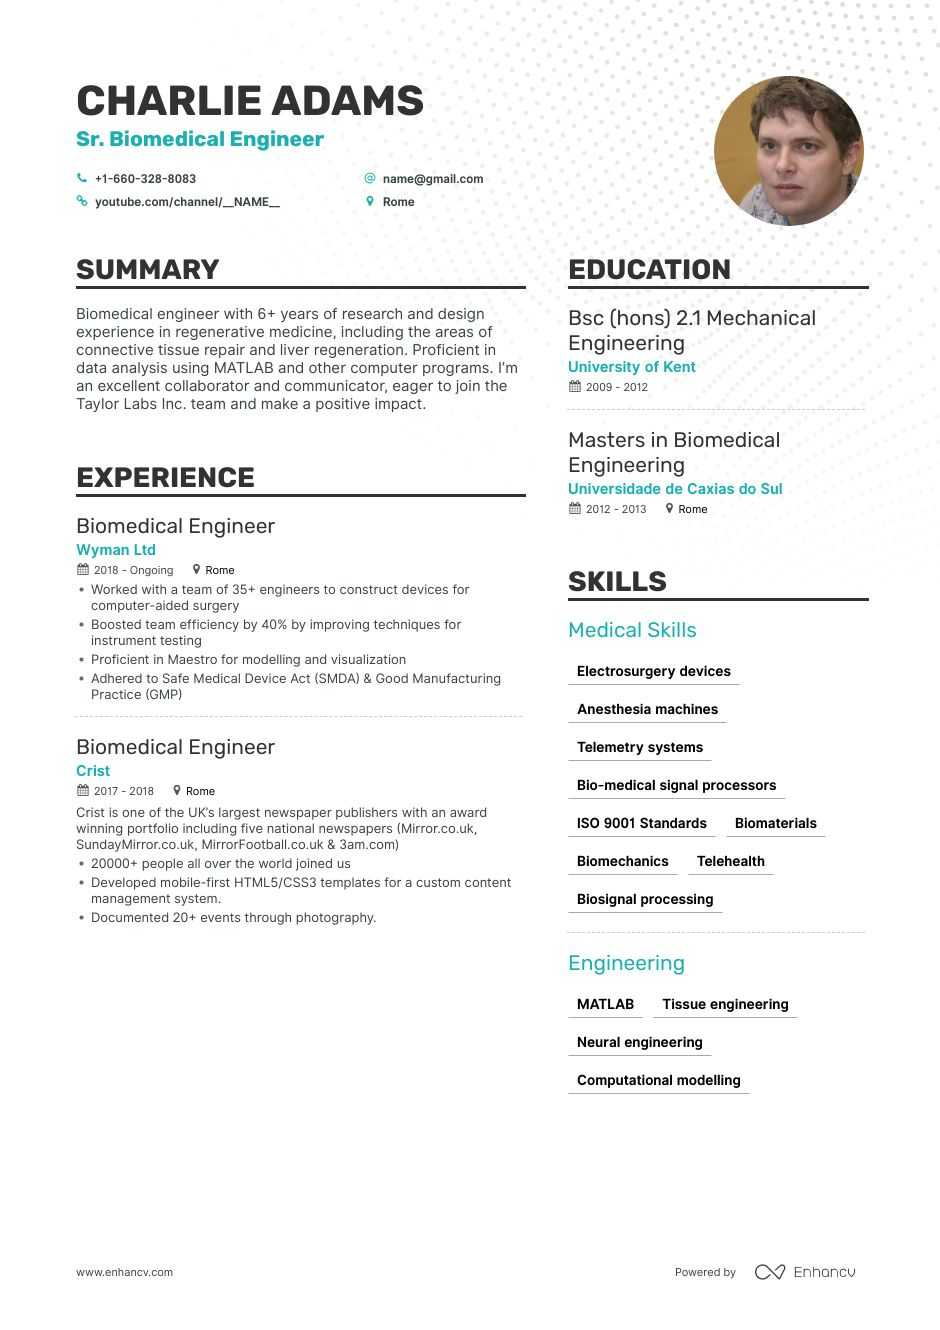 biomedical engineer resume step ultimate guide for enhancv fresher lawyer examples Resume Biomedical Engineer Fresher Resume